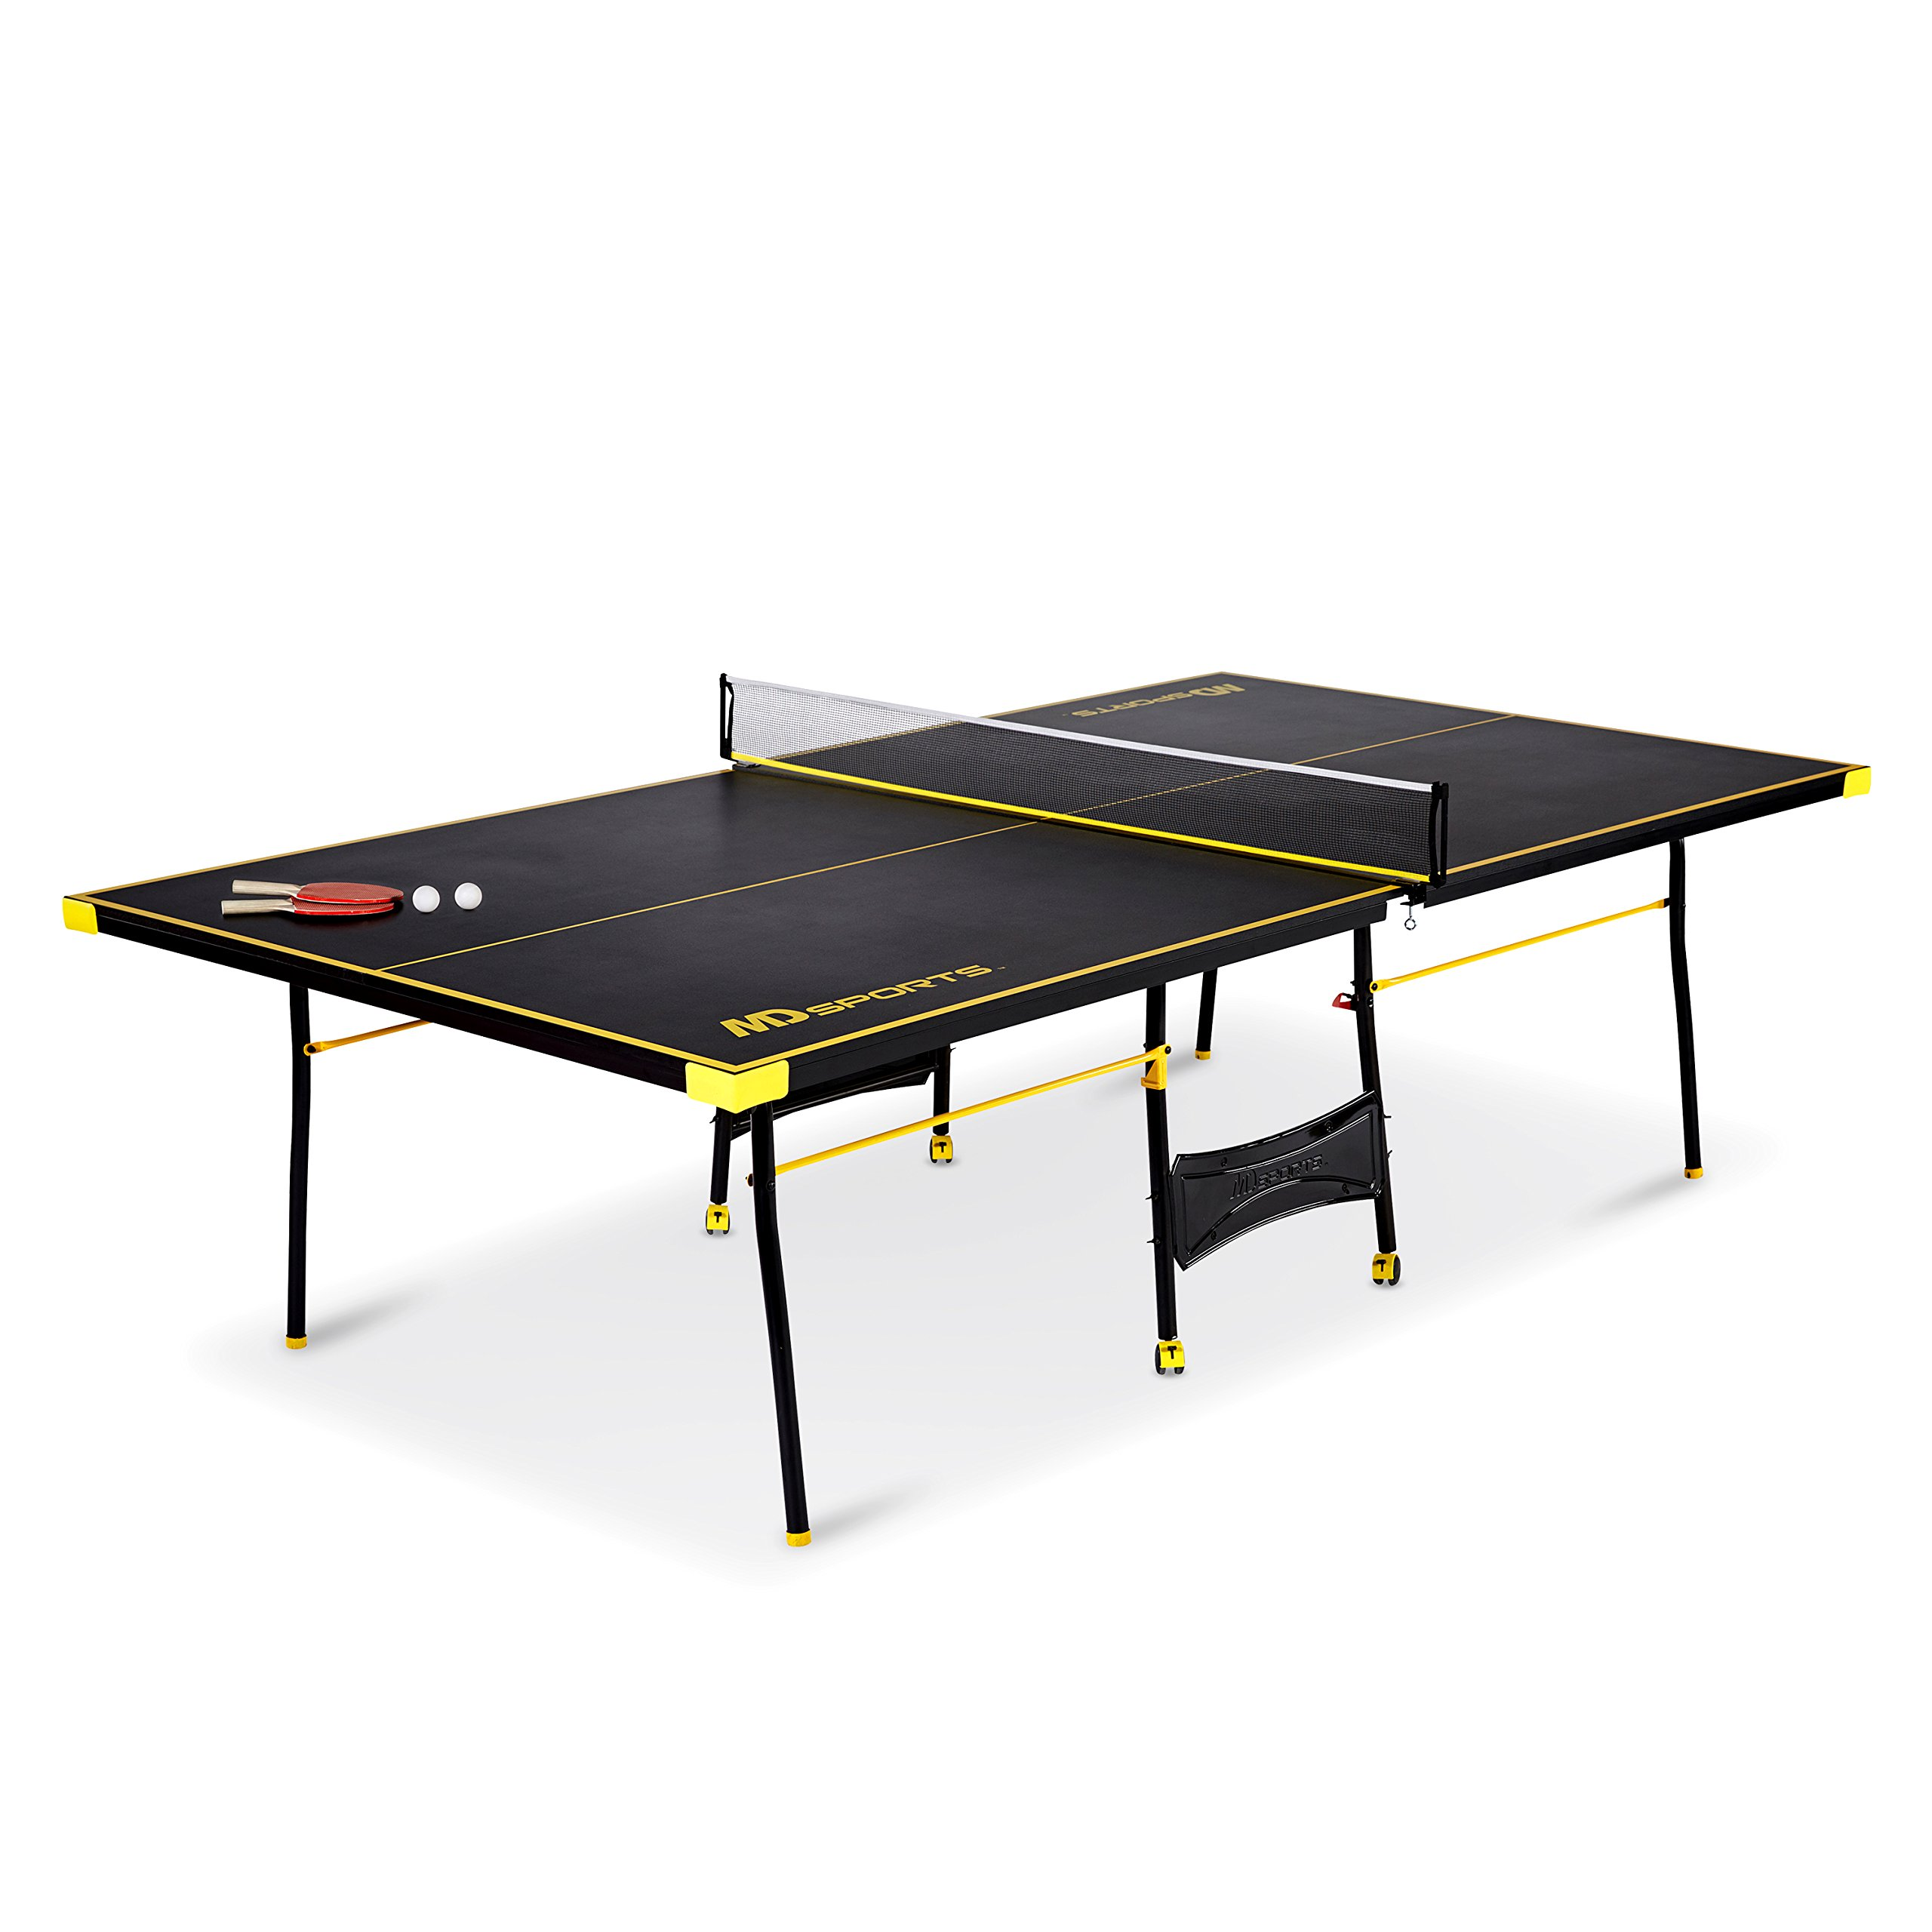 MD Sports Official Size Table Tennis Table, with Paddle and Balls, Blue White Misc.